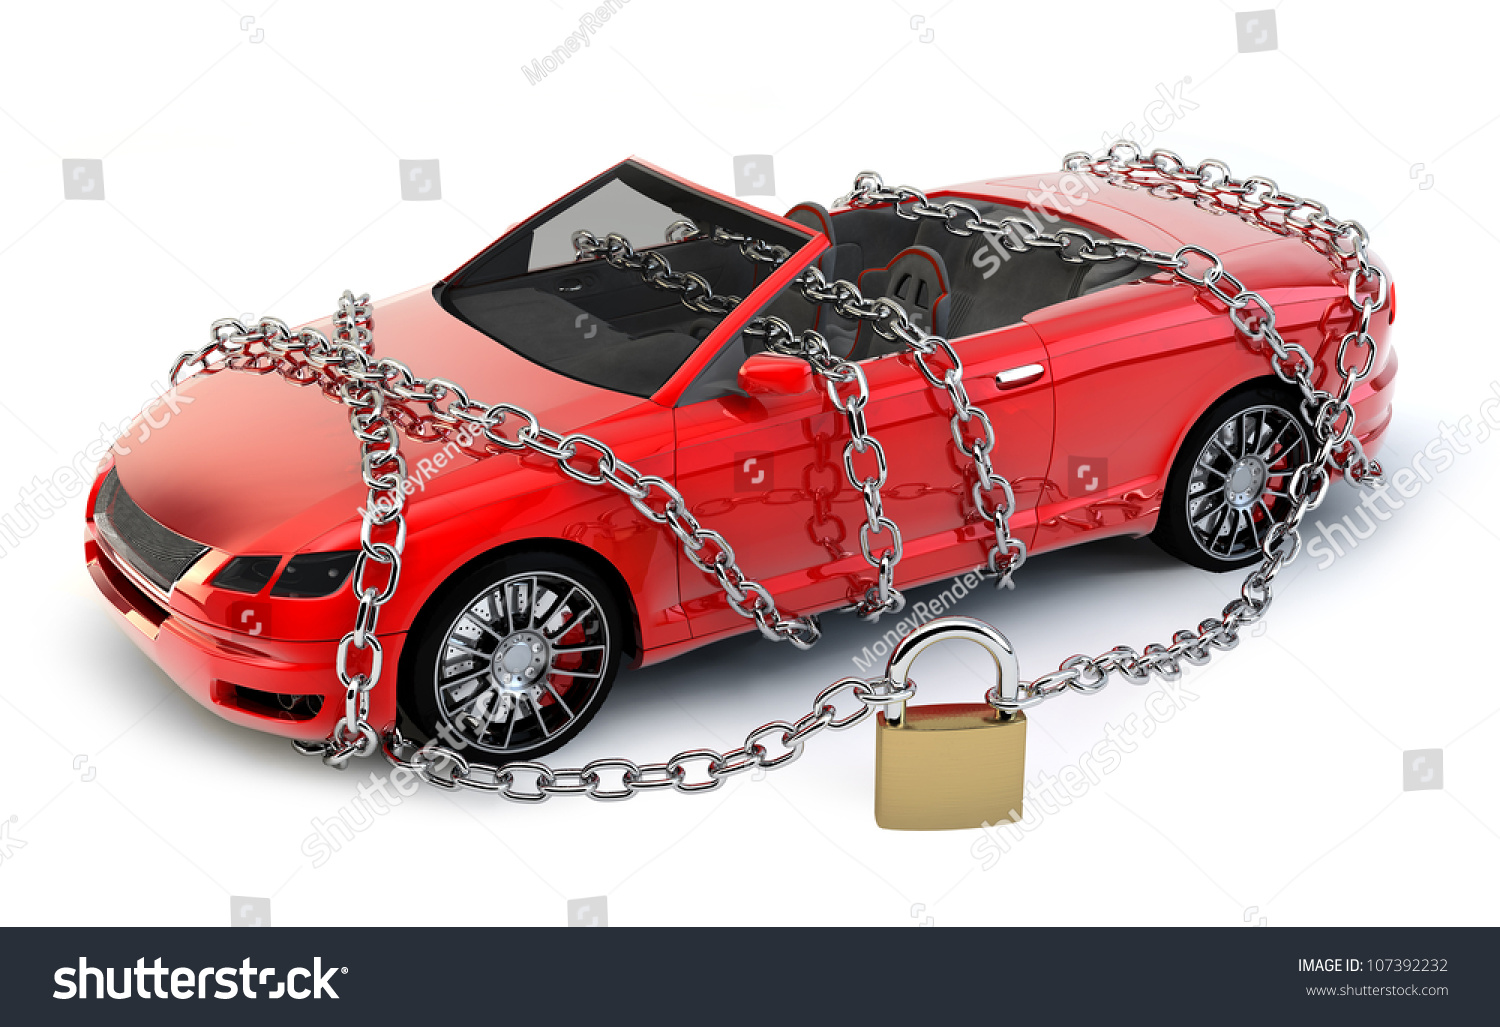 Design my car - No Brand Car Protected Wrapped With Chain And Lock My Own Design No Trademarks